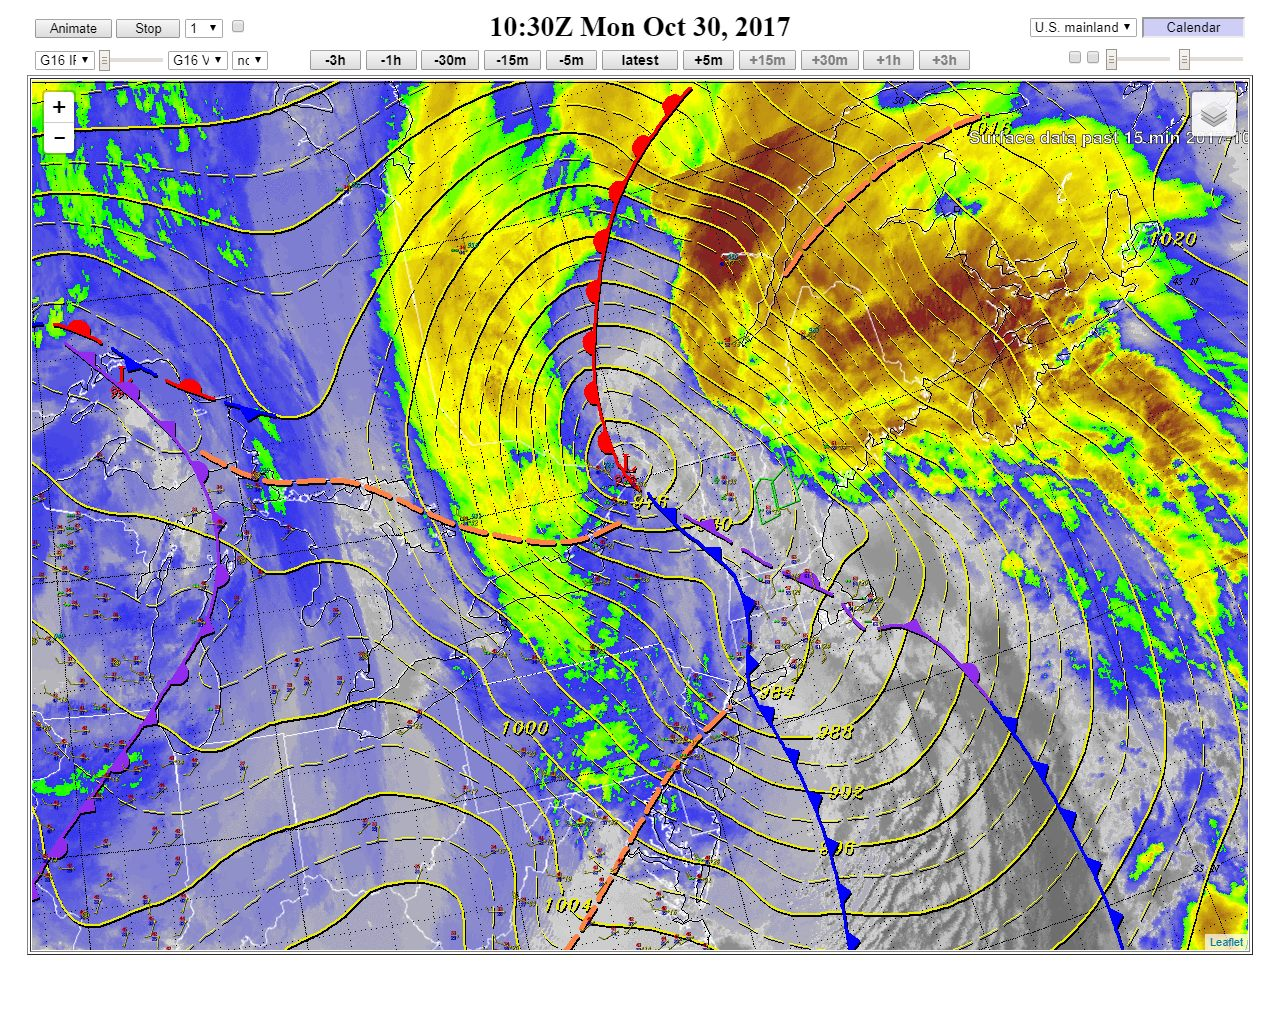 Storm Summary has been initialized for the deep low pressure system which is bringing damaging winds, heavy rain across the Northeast, even some snow over West Virginia.